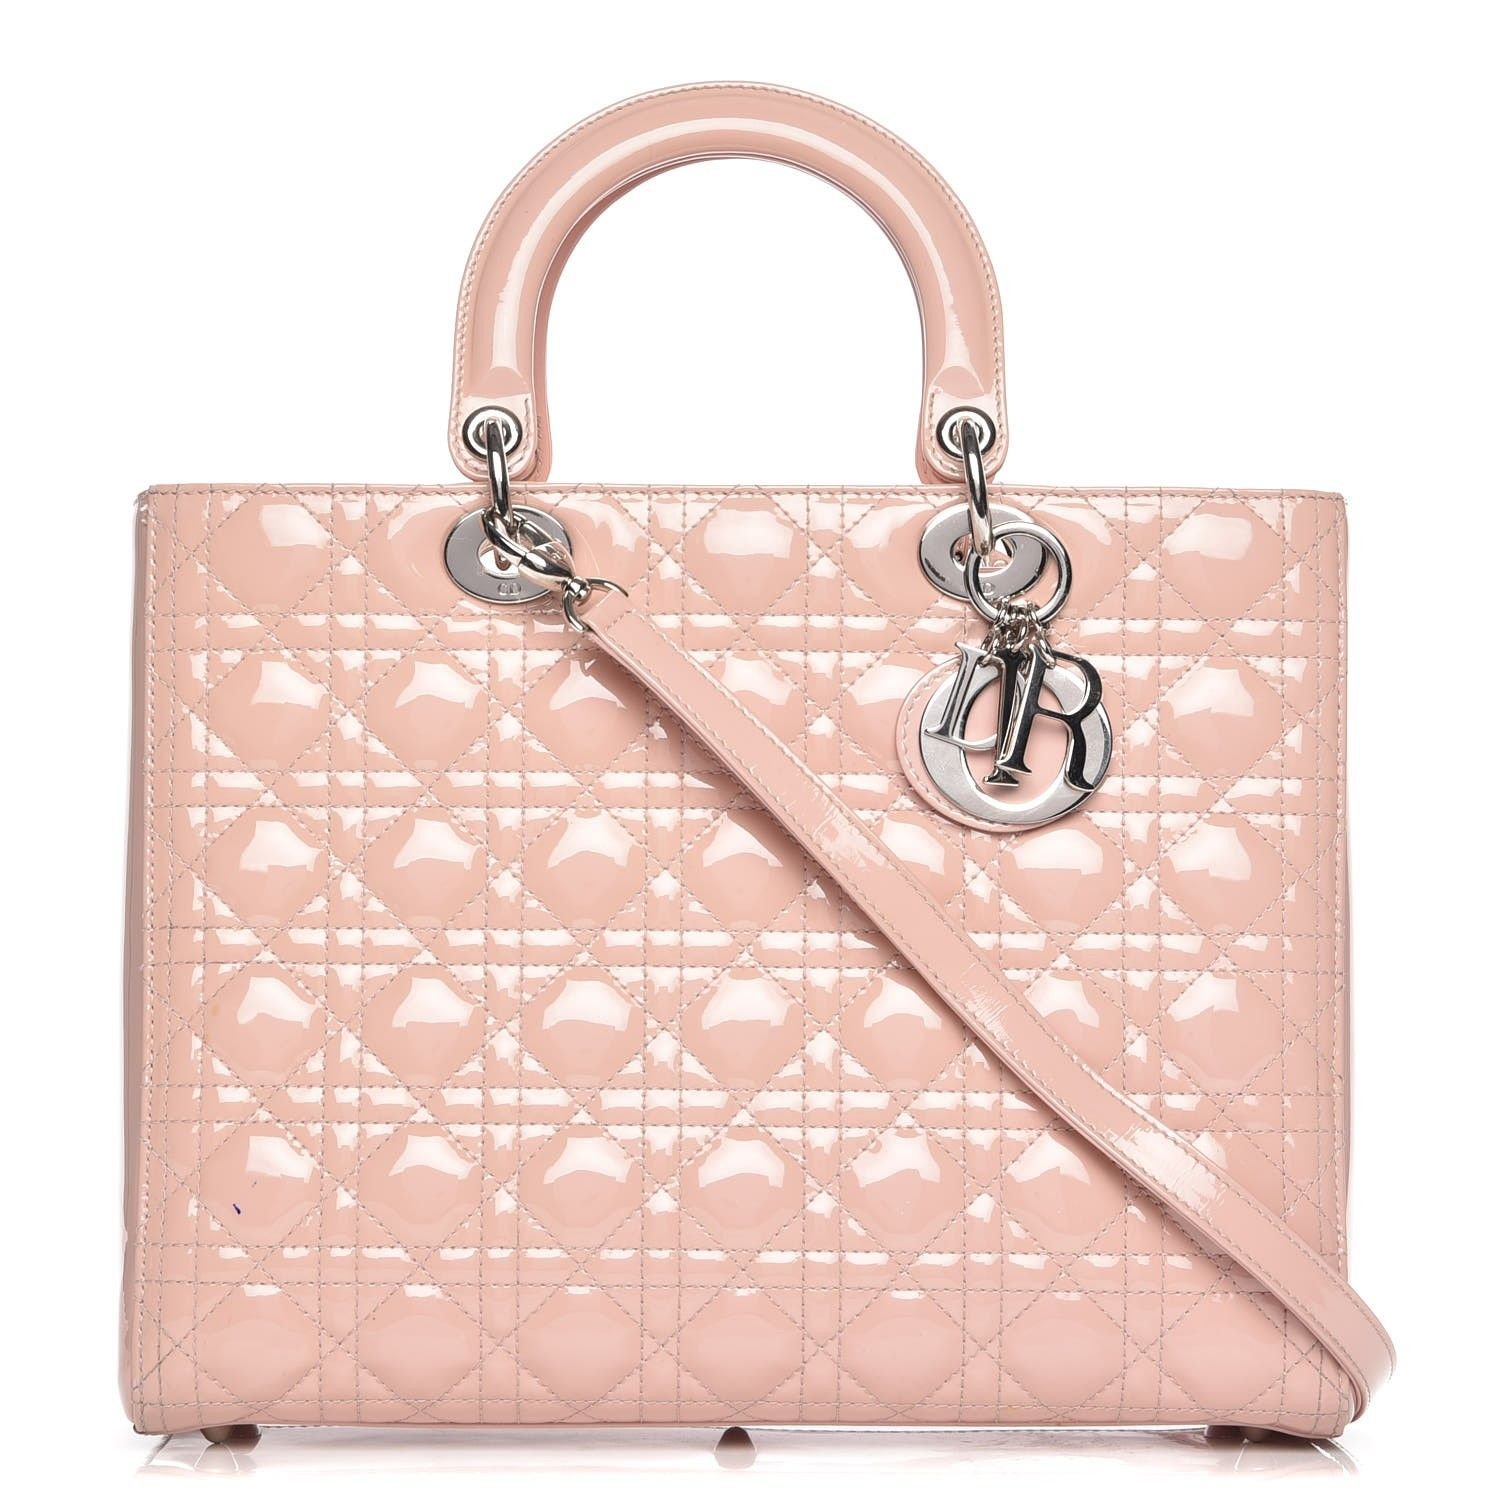 0b303fcaba3d This is an authentic CHRISTIAN DIOR Patent Cannage Large Lady Dior in Light  Pink. This